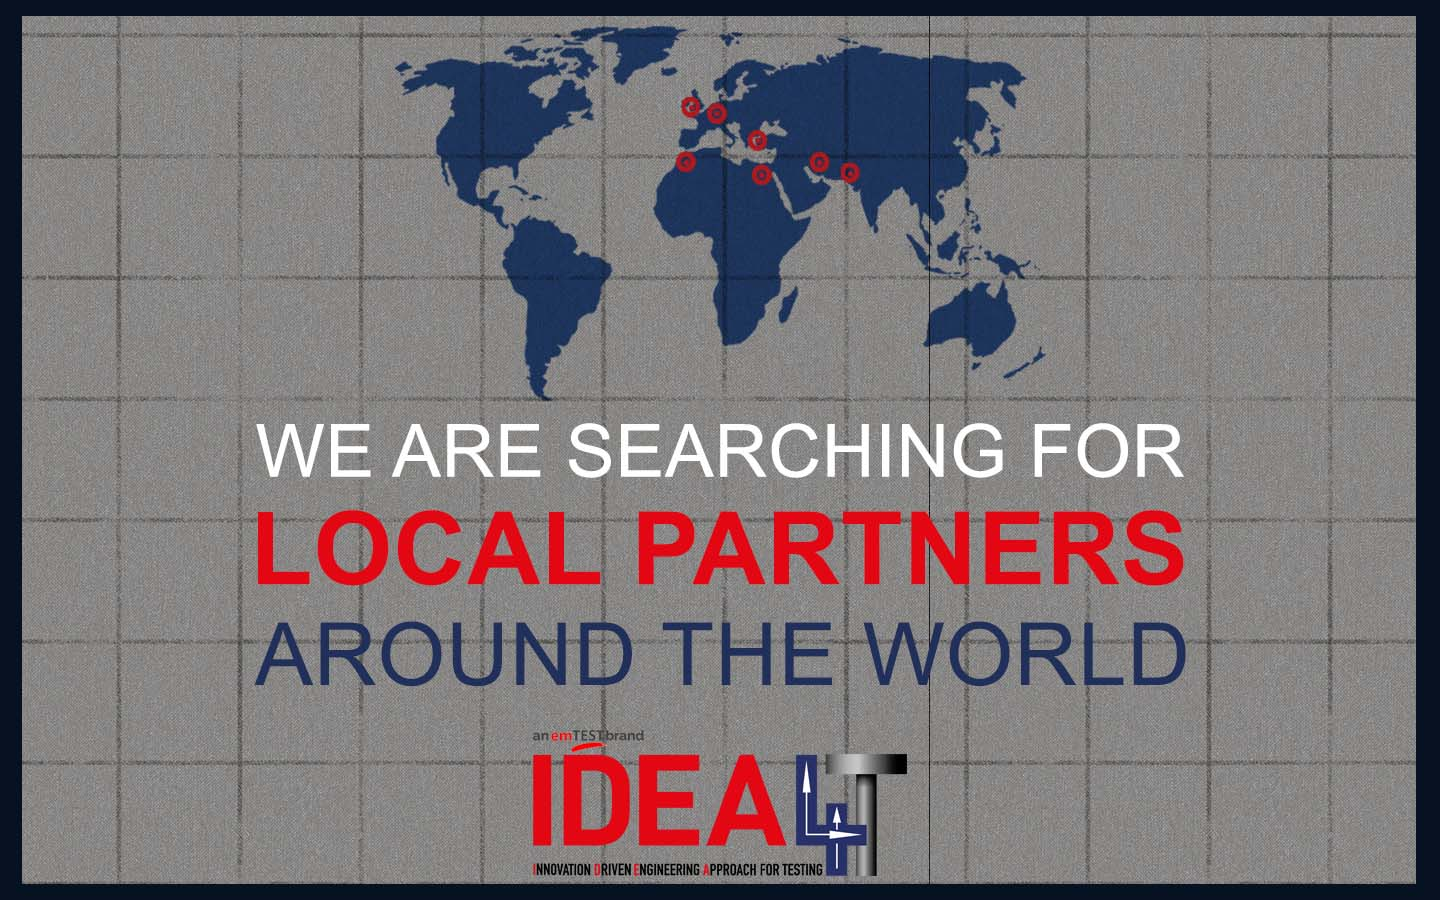 Idea4T is looking for partners